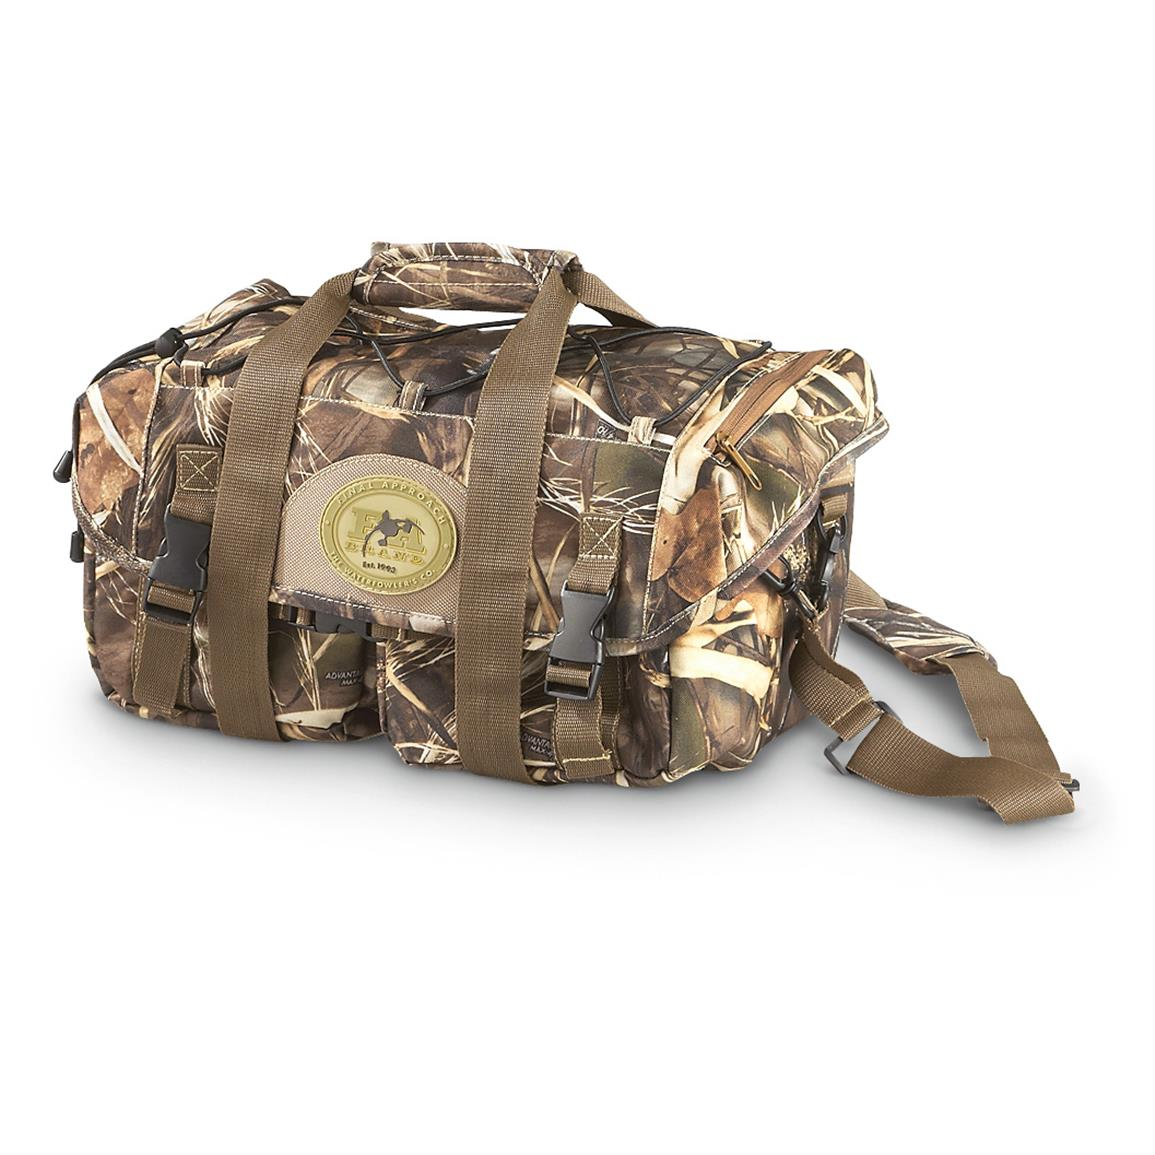 Final Approach® Large Layout Blind Bag, Realtree Max-4® • 10 x 15 1/2 x 8""